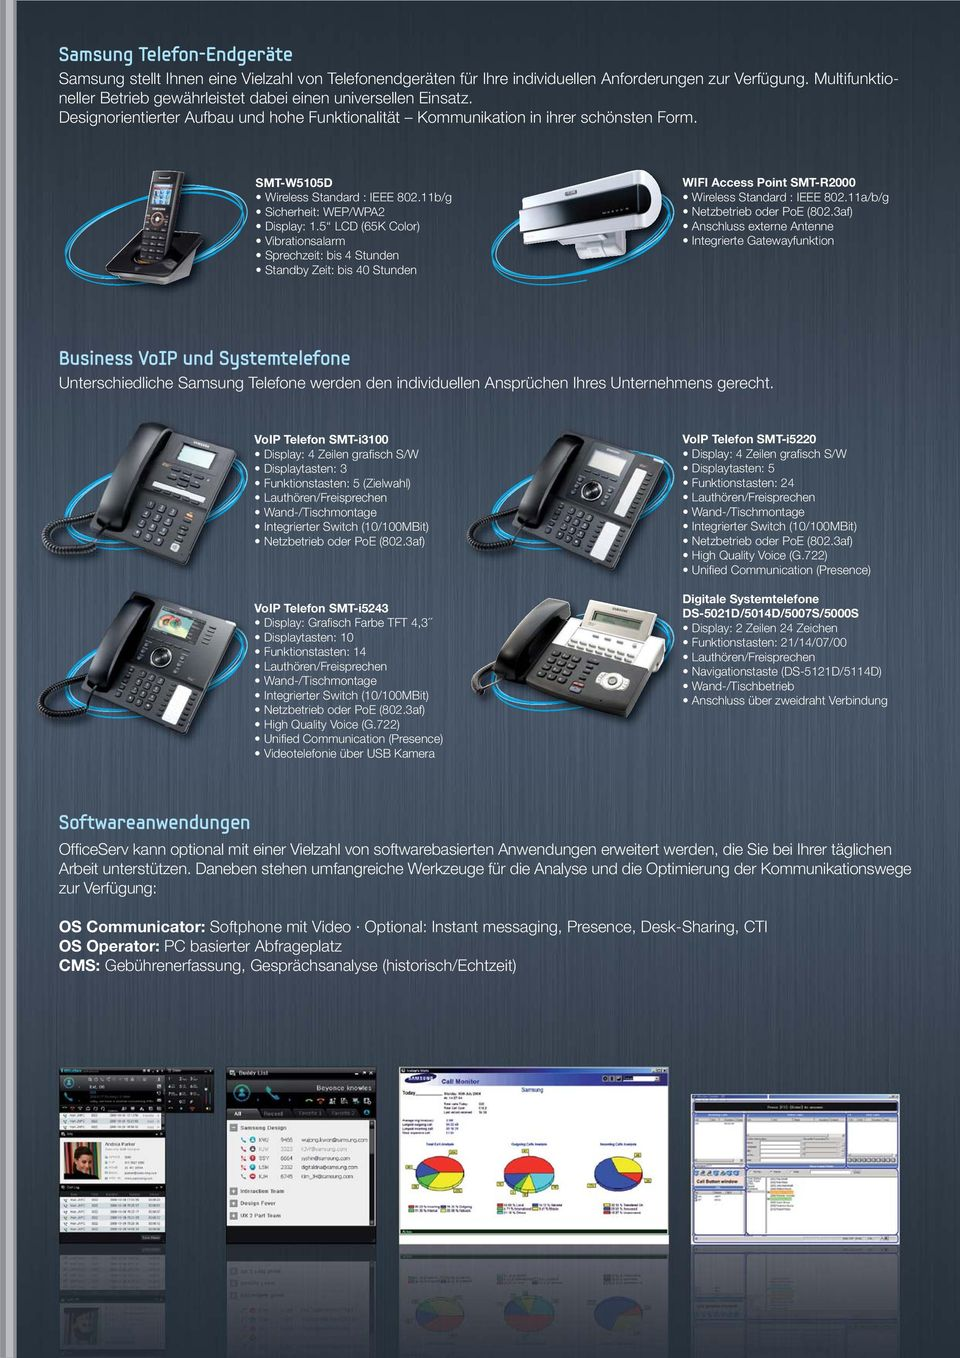 SMT-W5105D Wireless Standard : IEEE 802.11b/g Sicherheit: WEP/WPA2 Display: 1.